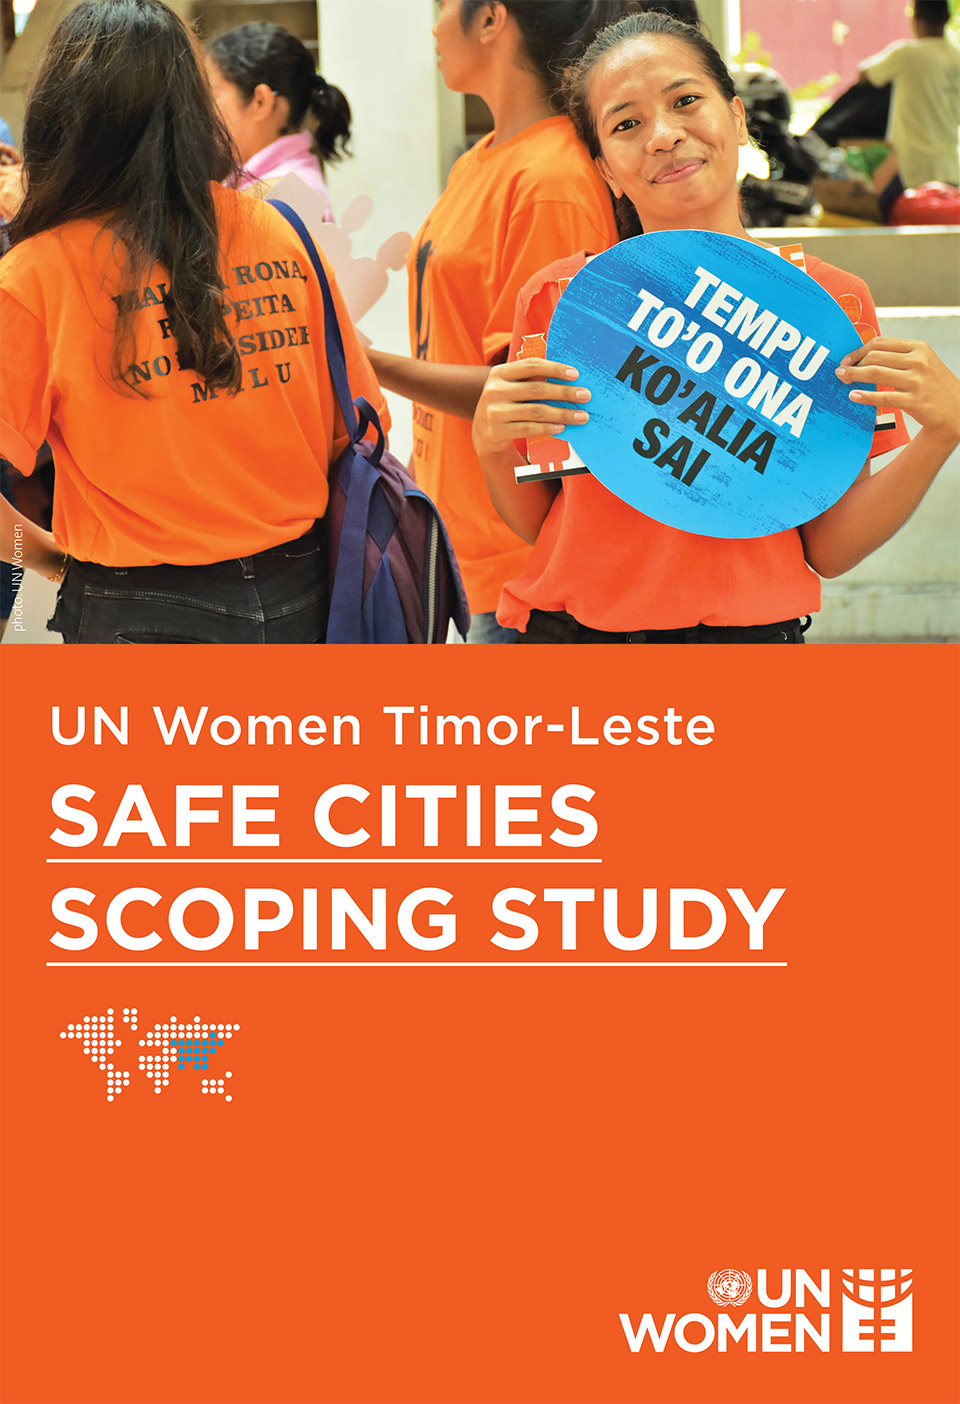 Safe Cities Scoping Study